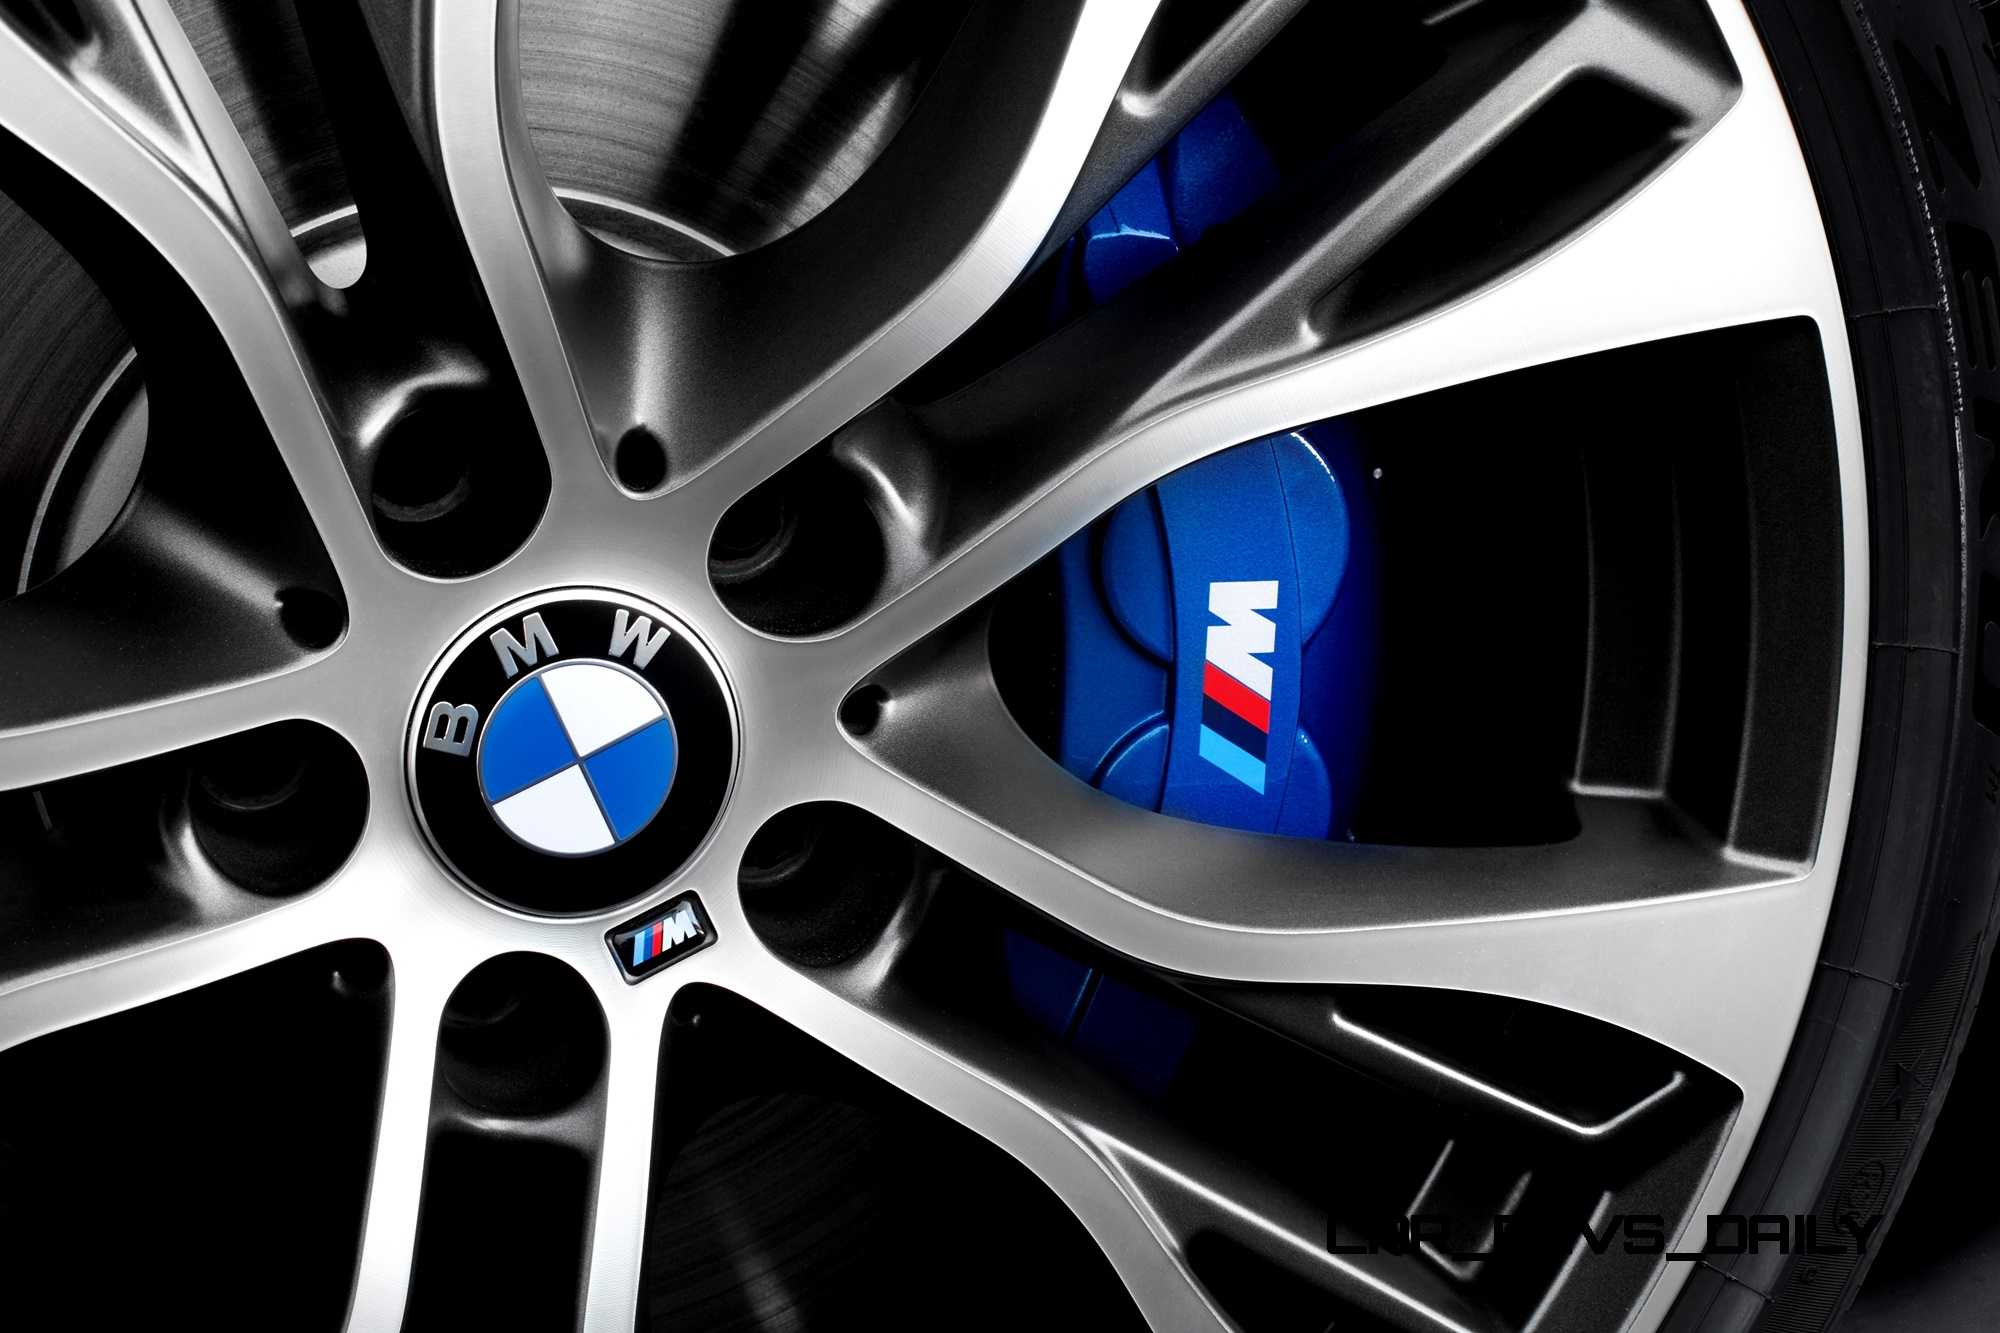 are brakes forums decals else not the wheel consistent notice bmw convertible closeup anyone showthread caliper